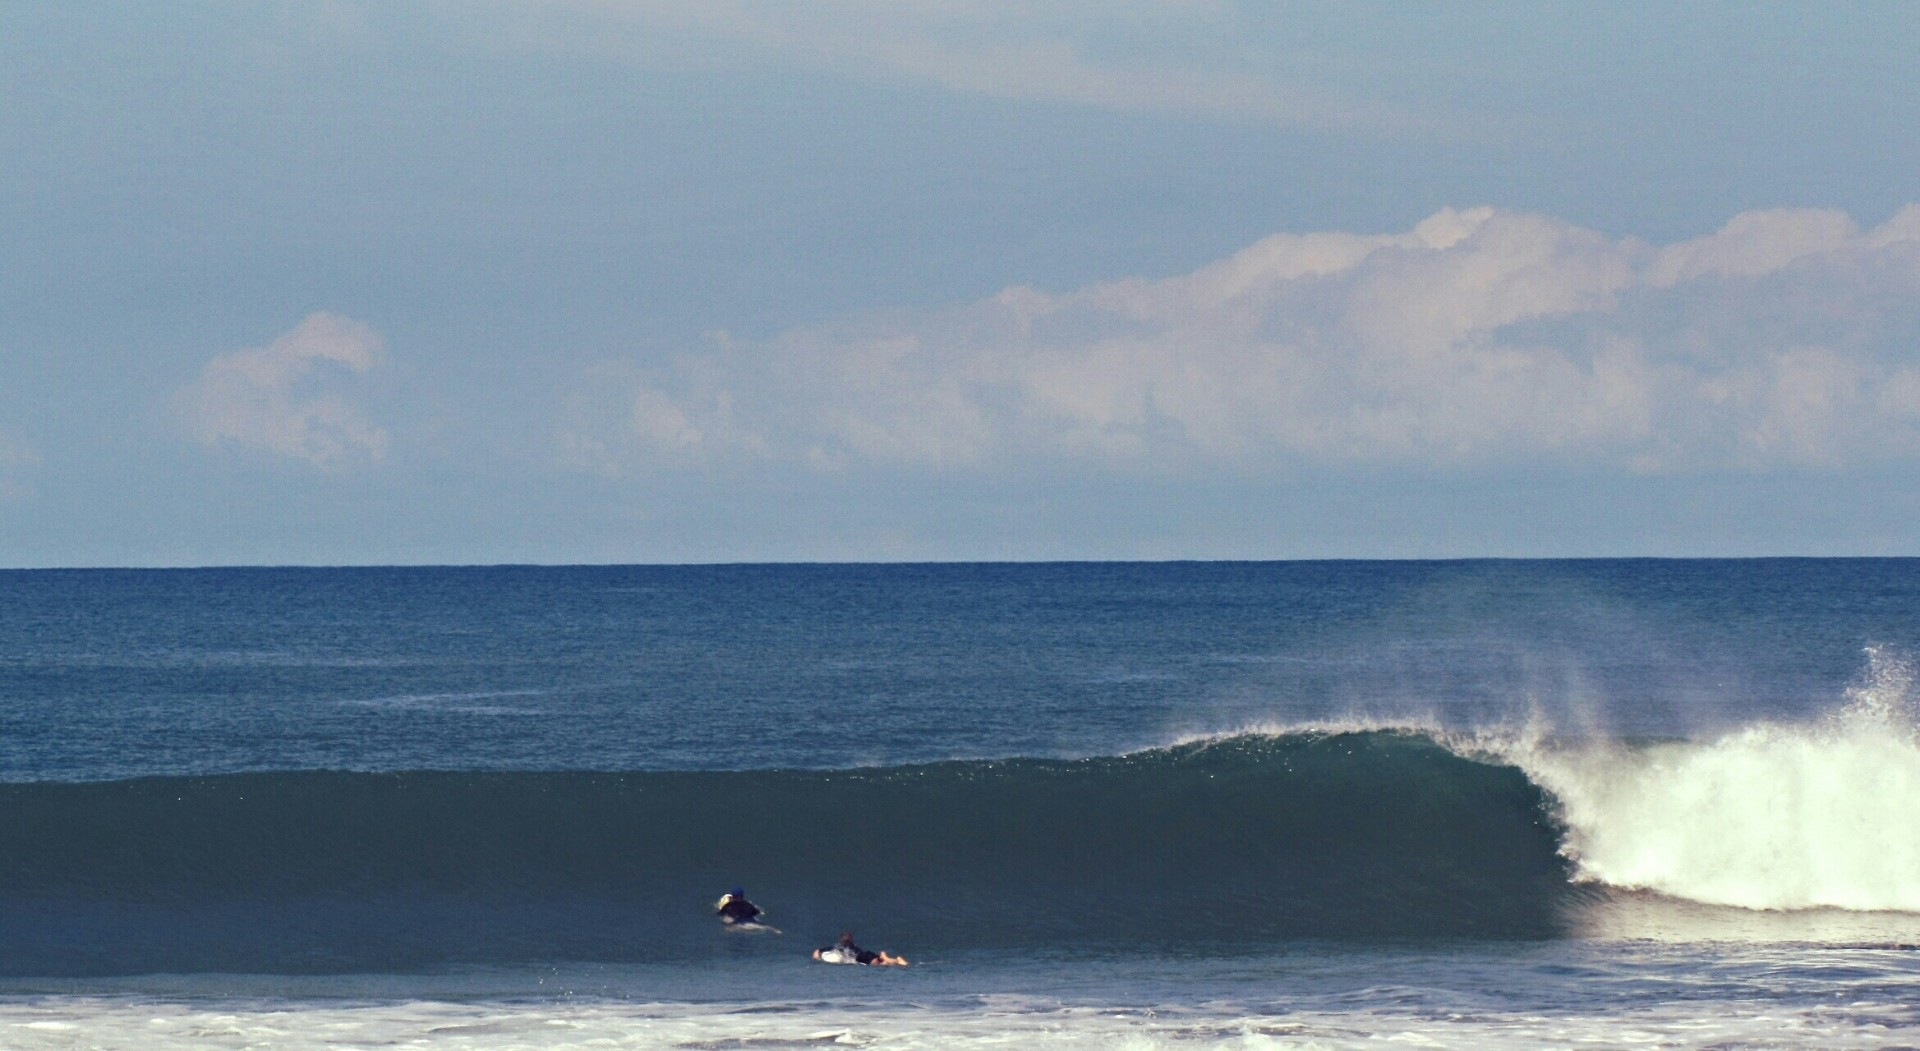 canadiansurfer's photo of Playa Hermosa - Osa Peninsula